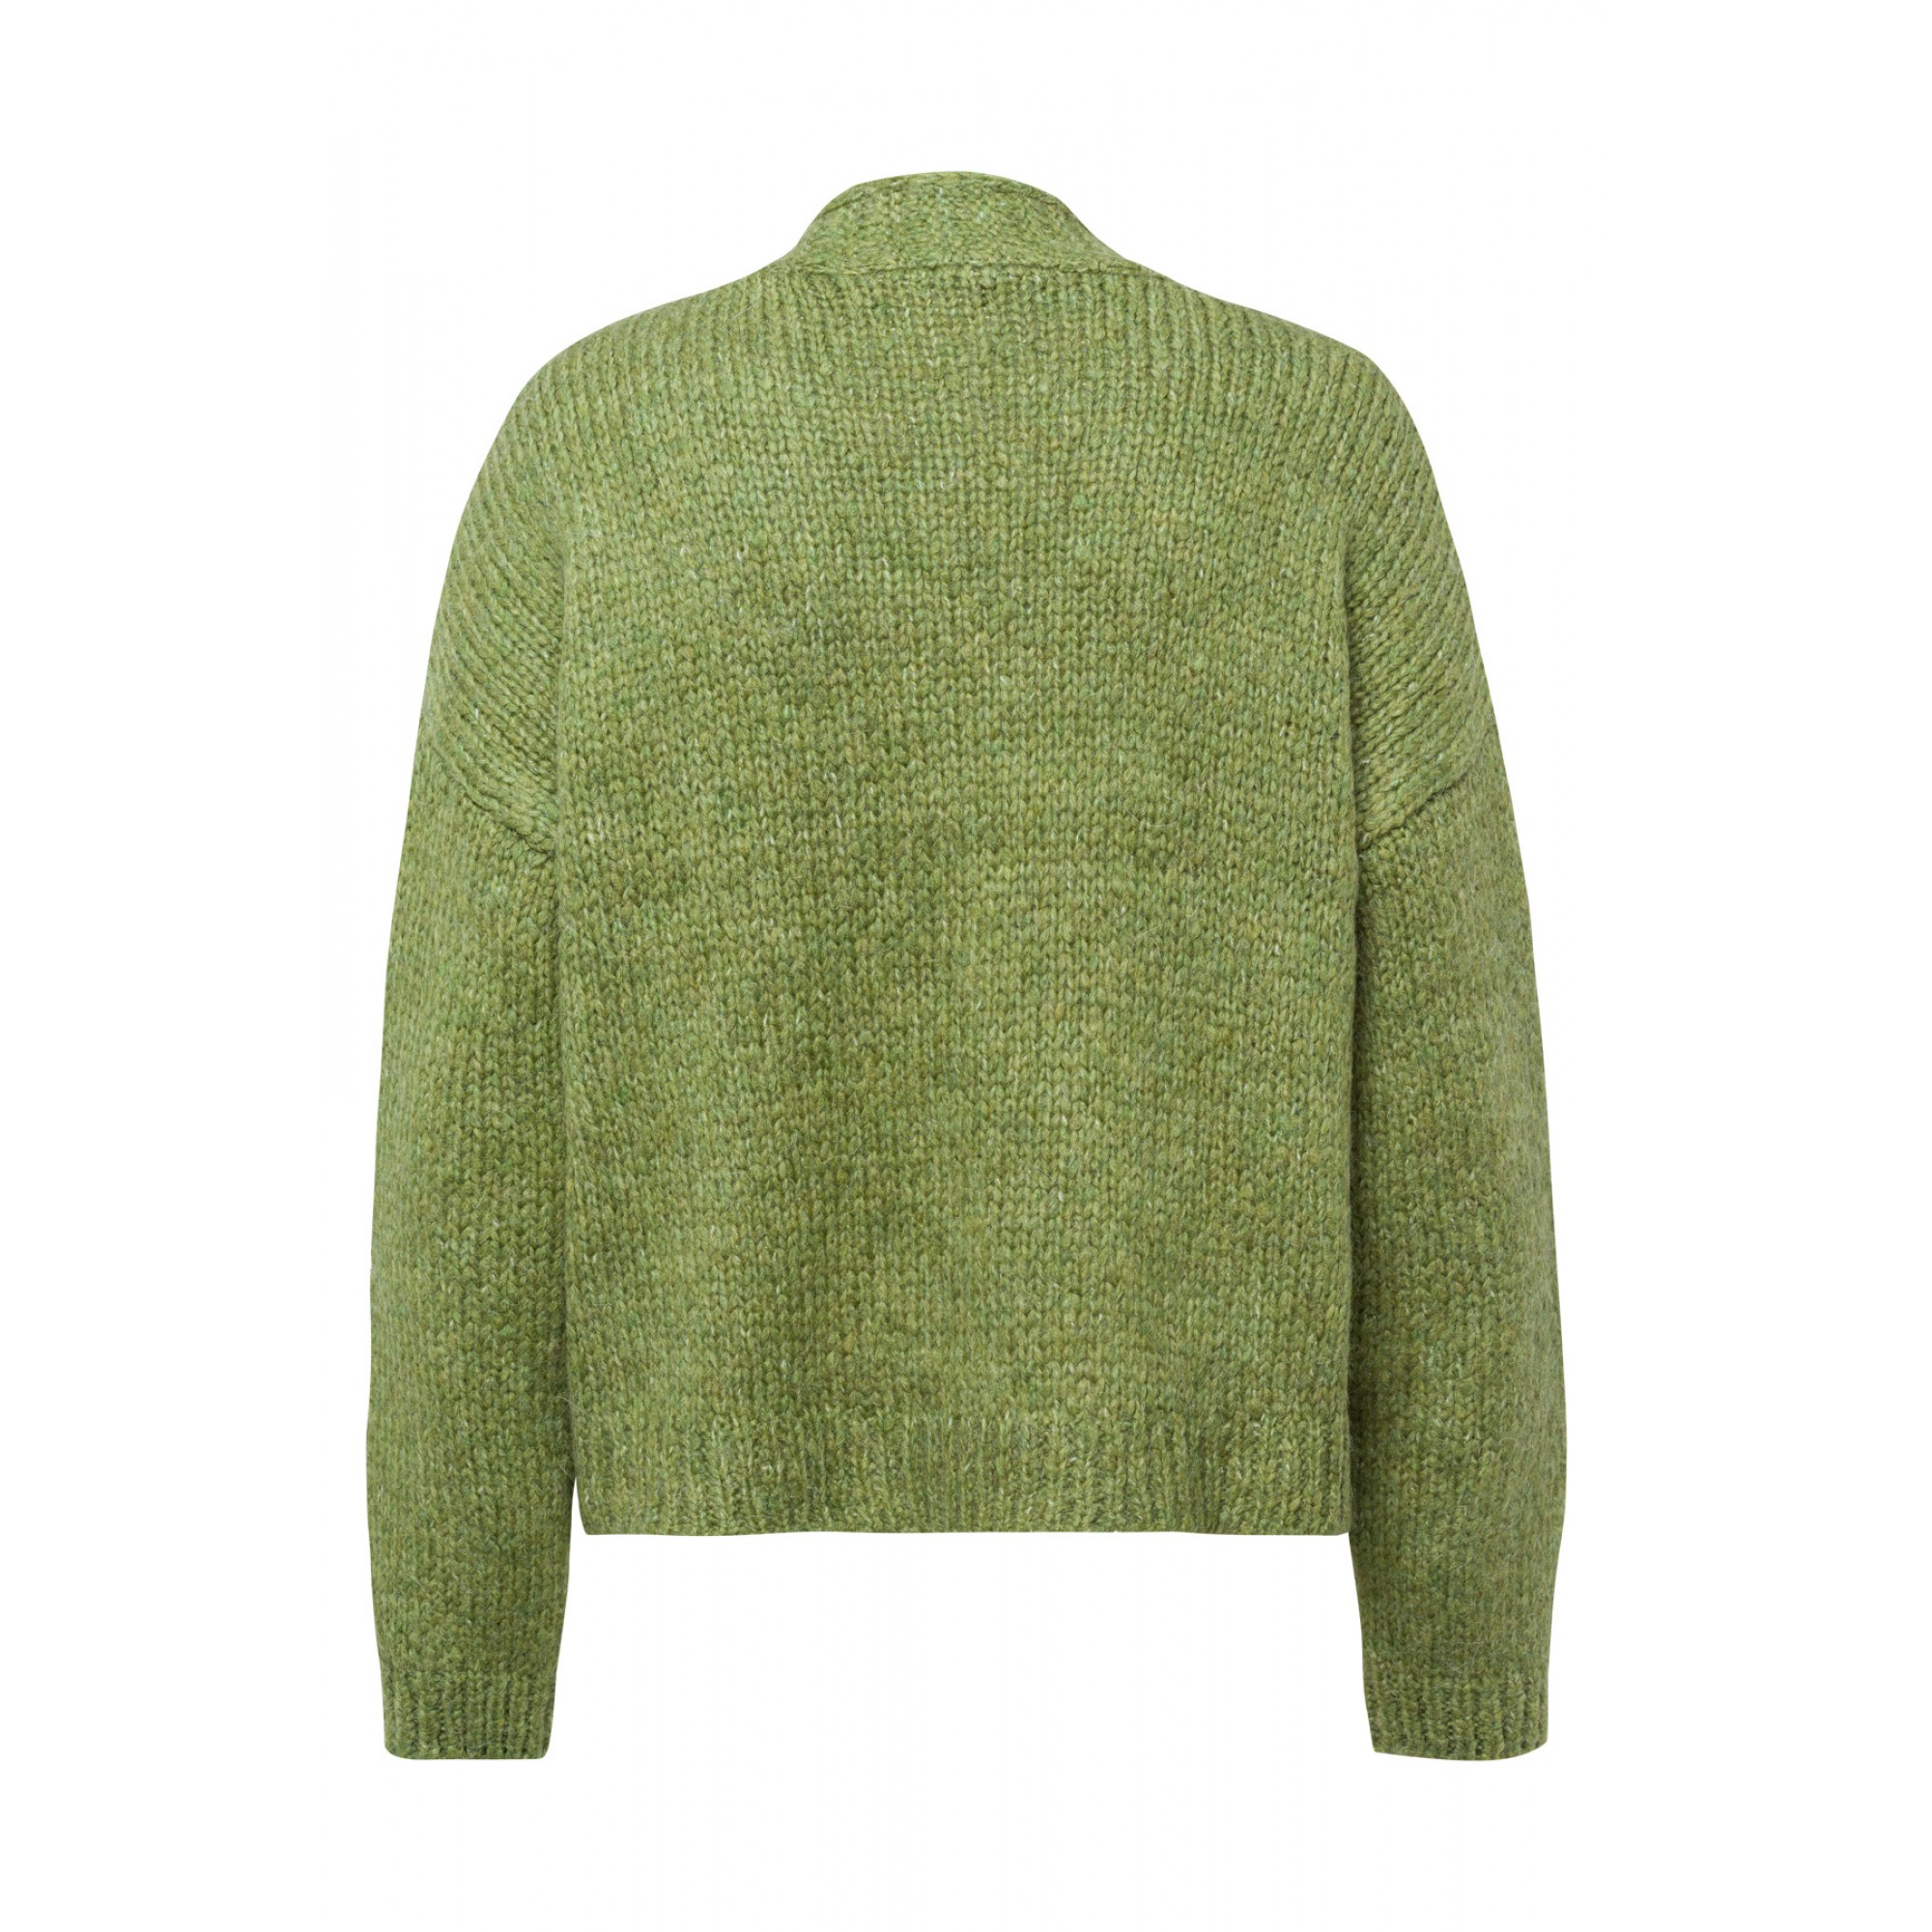 Cardigan, leaf green 01091222-0649 2